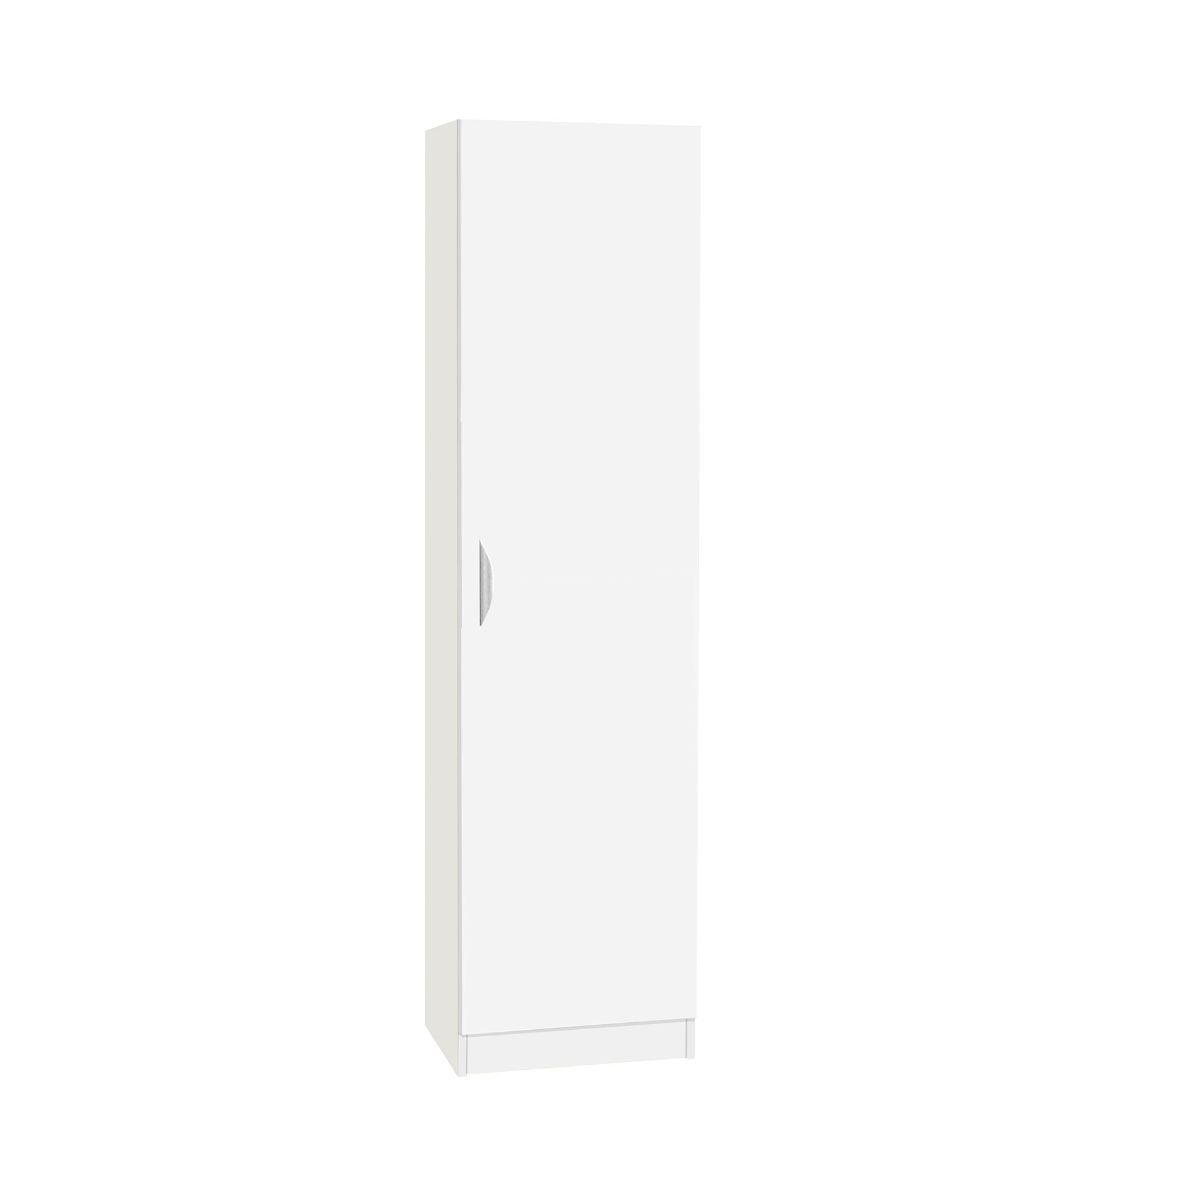 R White Tall Cupboard Storage White, White